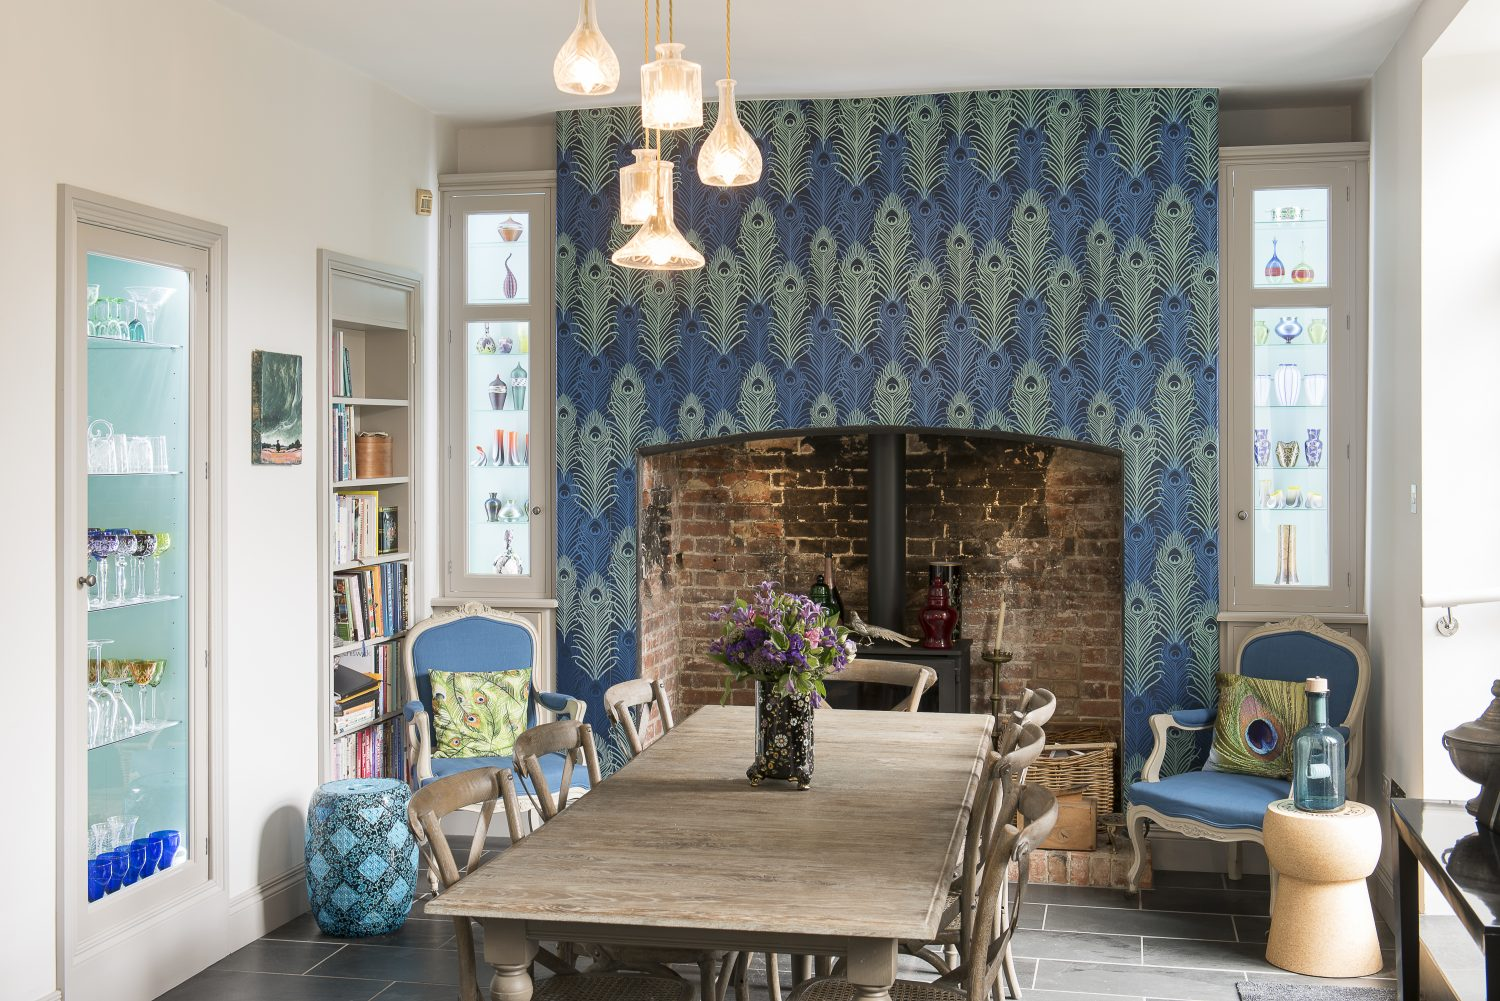 Jane's love of peacock feathers is in strong evidence in the kitchen. The wallpaper is by Matthew Williamson. The chandelier is by Lee Broom